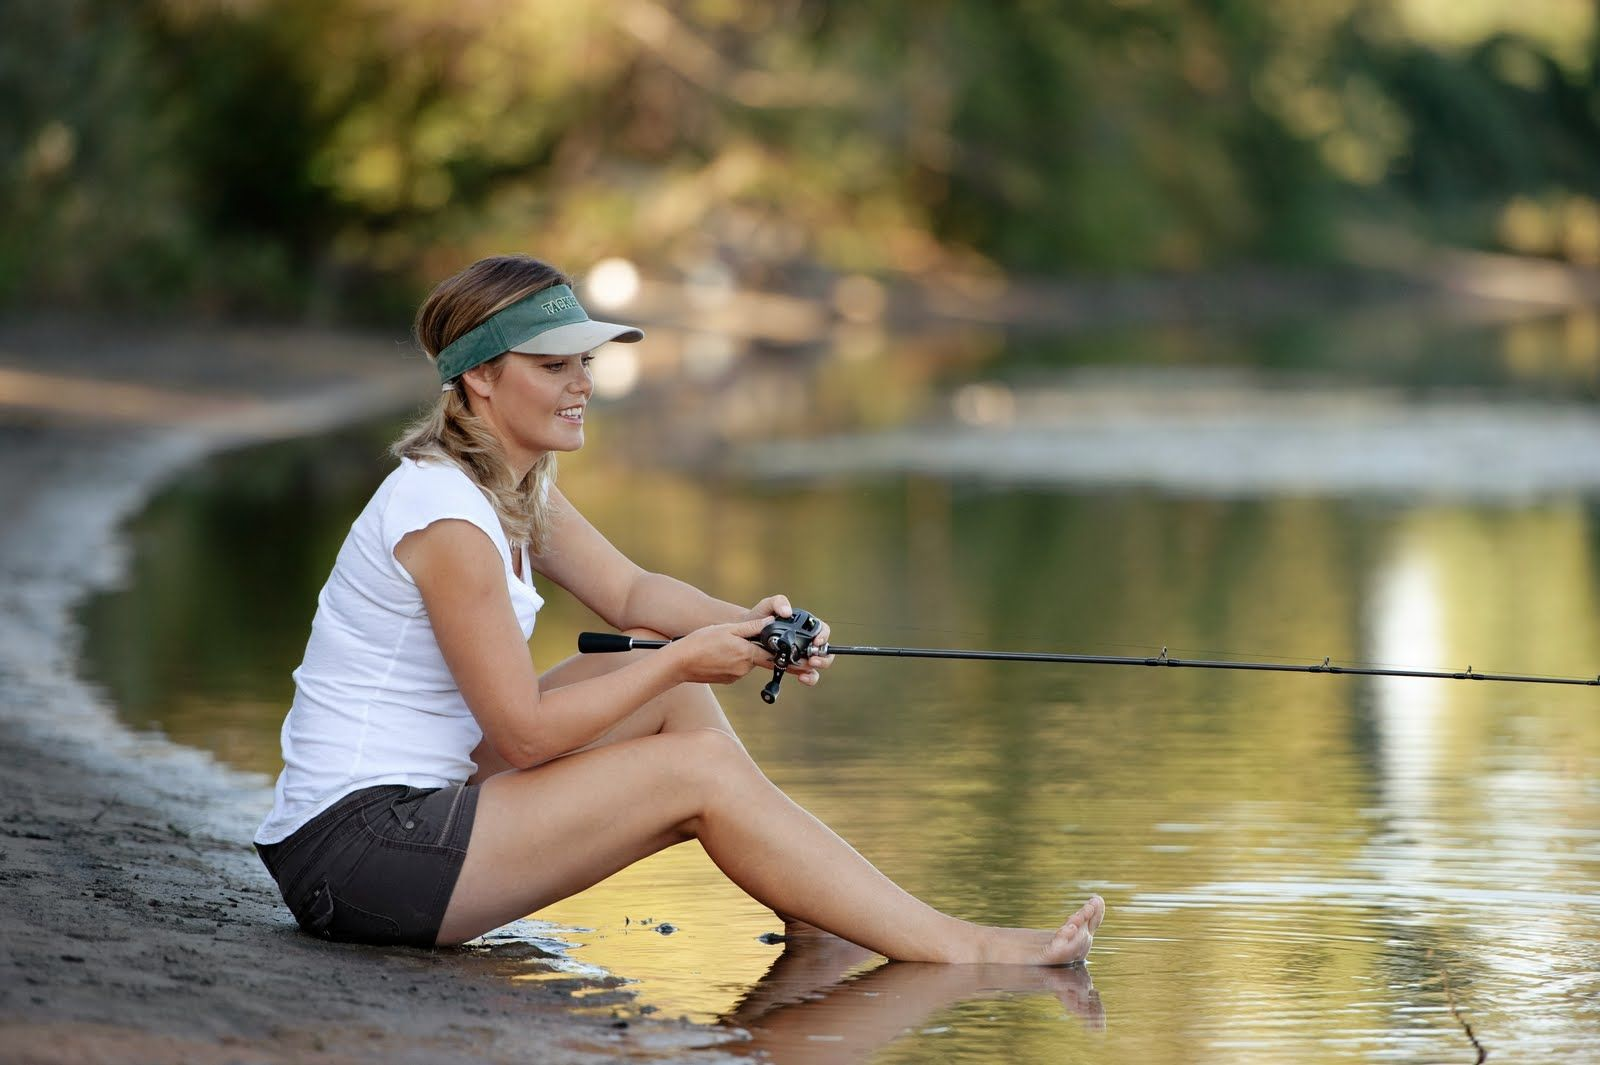 Sexy babes fishing wallpapers